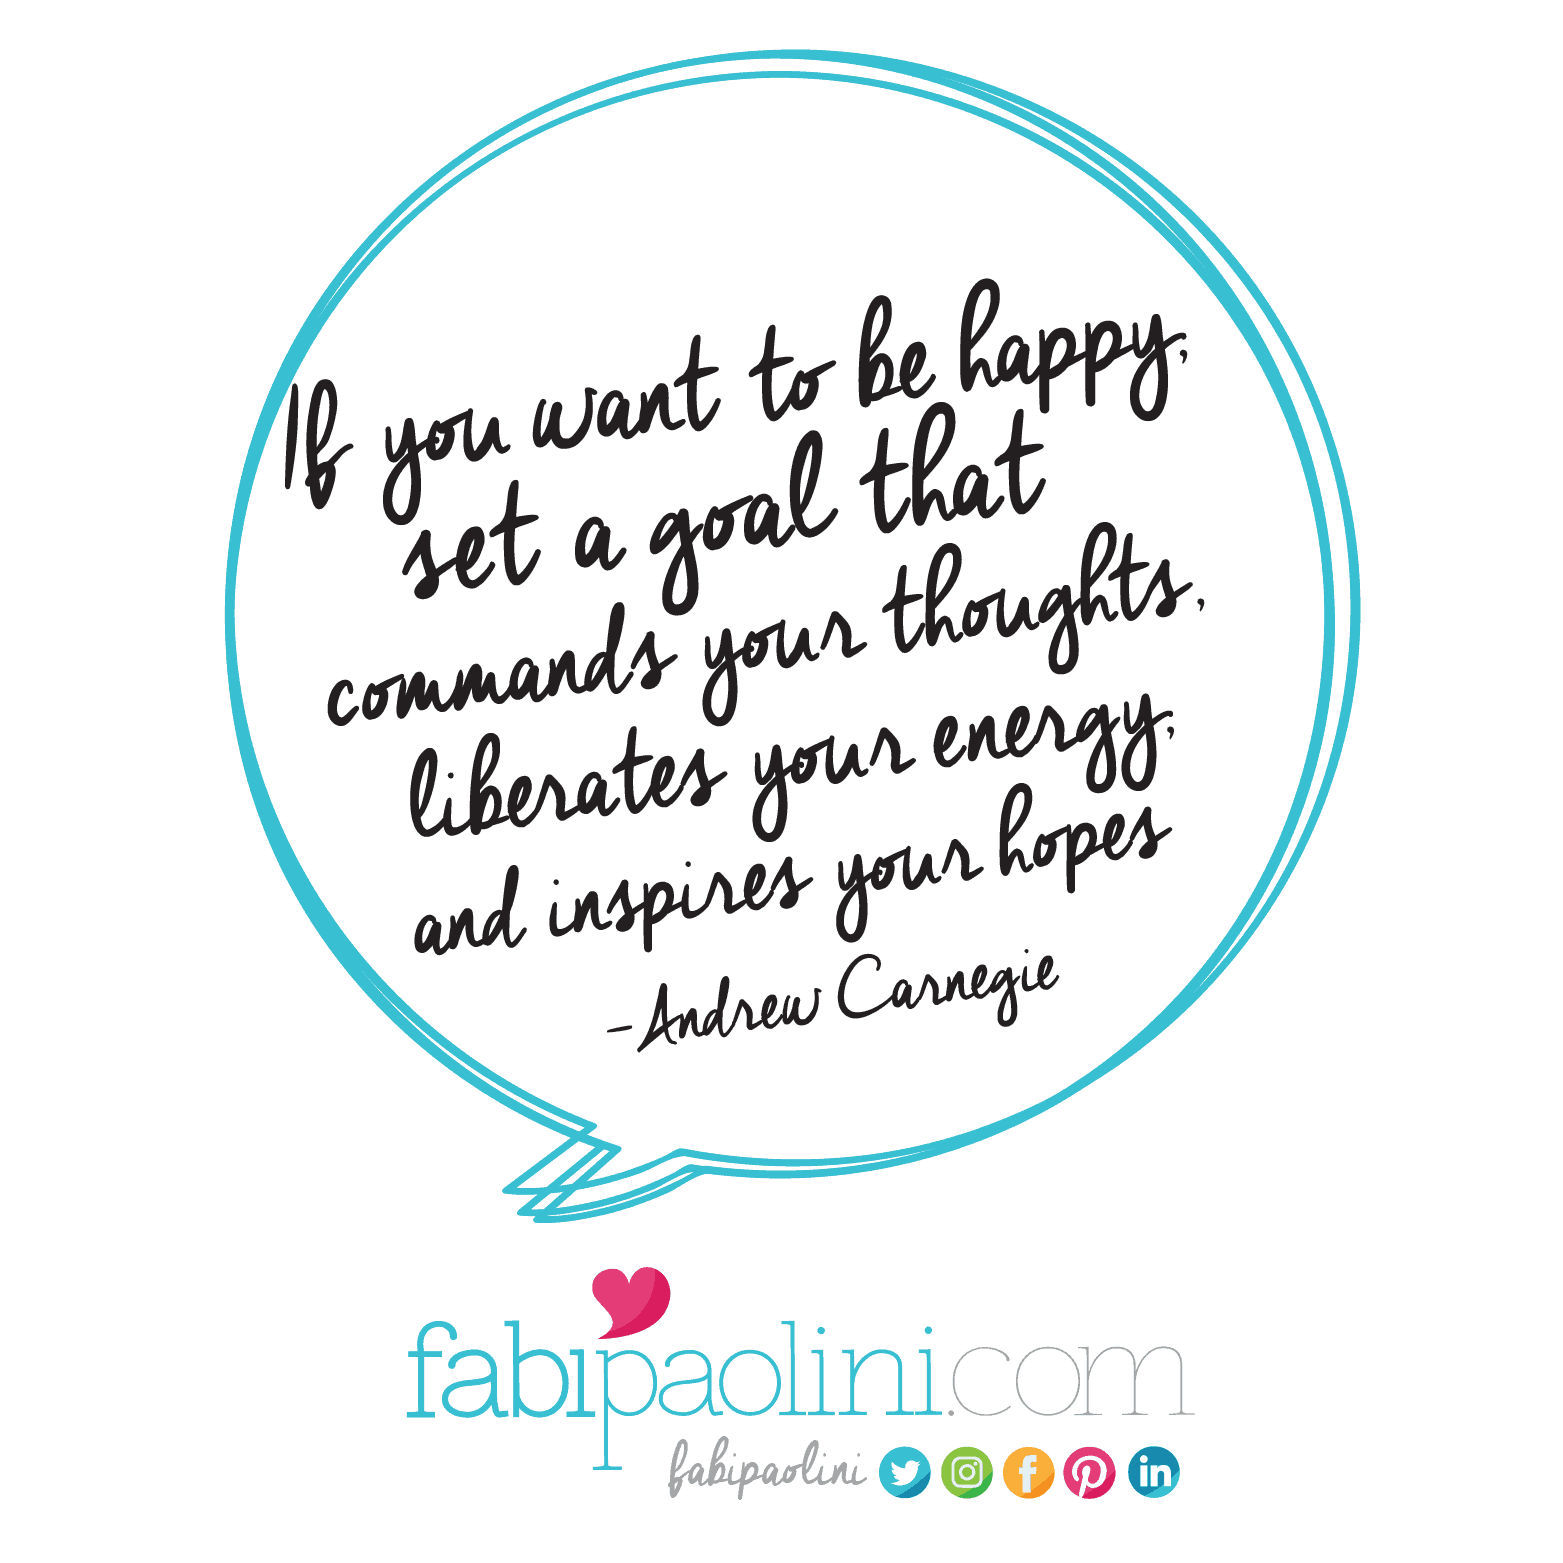 If you want to be happy, set a goal that commands your thoughts, liberates your energy and inspires your hopes. Business Goals. Andrew Carnegie. Fabi Paolini | Branding + Design